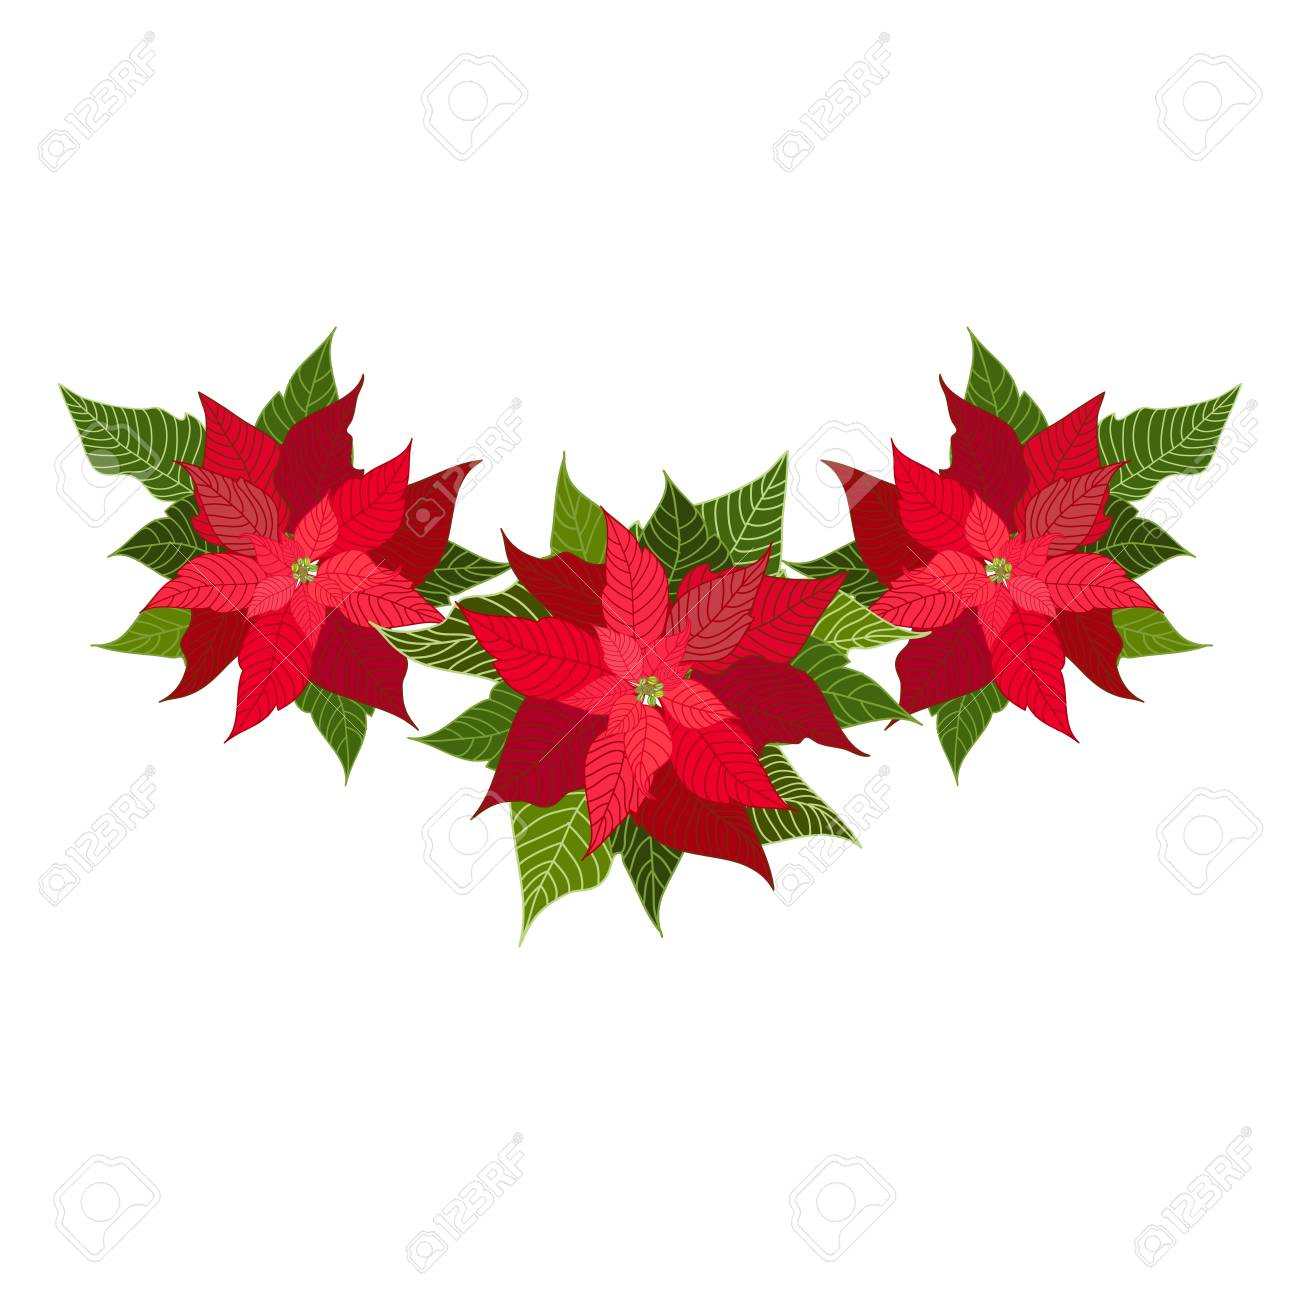 Christmas Decorations With Poinsettia Design Element For